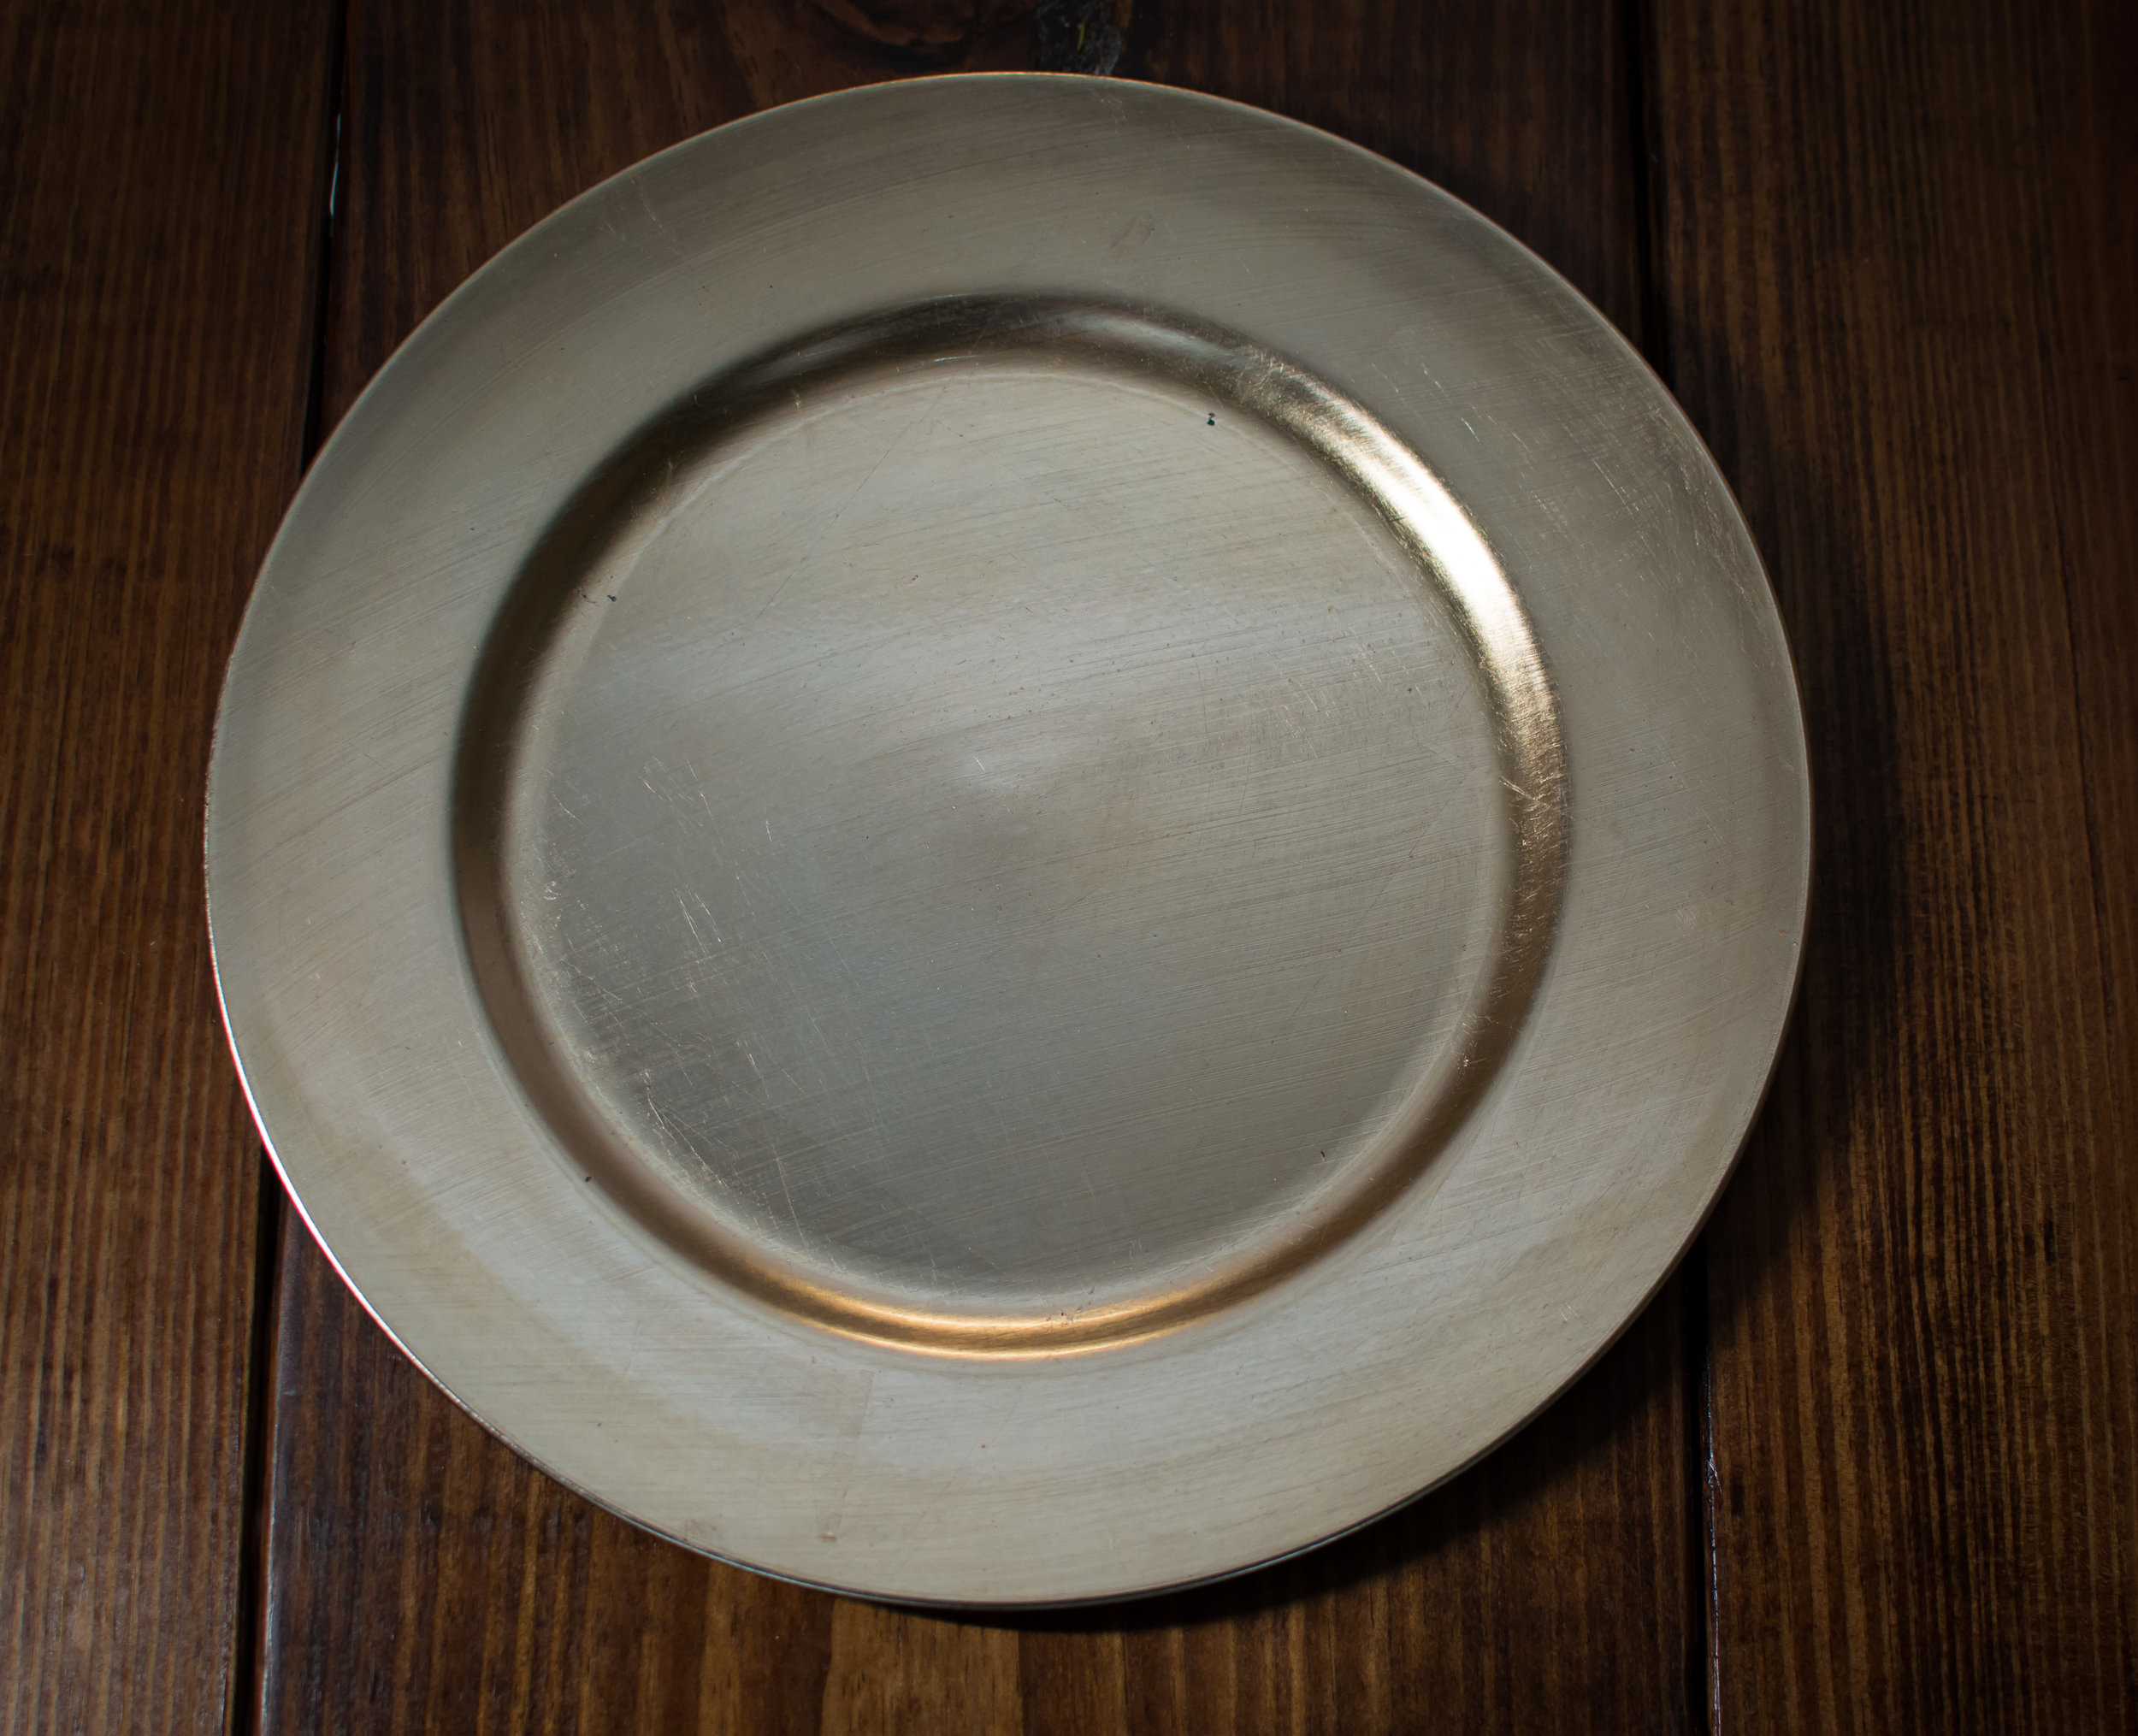 Gold charger plate   Material: Acrylic  $1.00 Per Plate  Inquire about quantity and availability